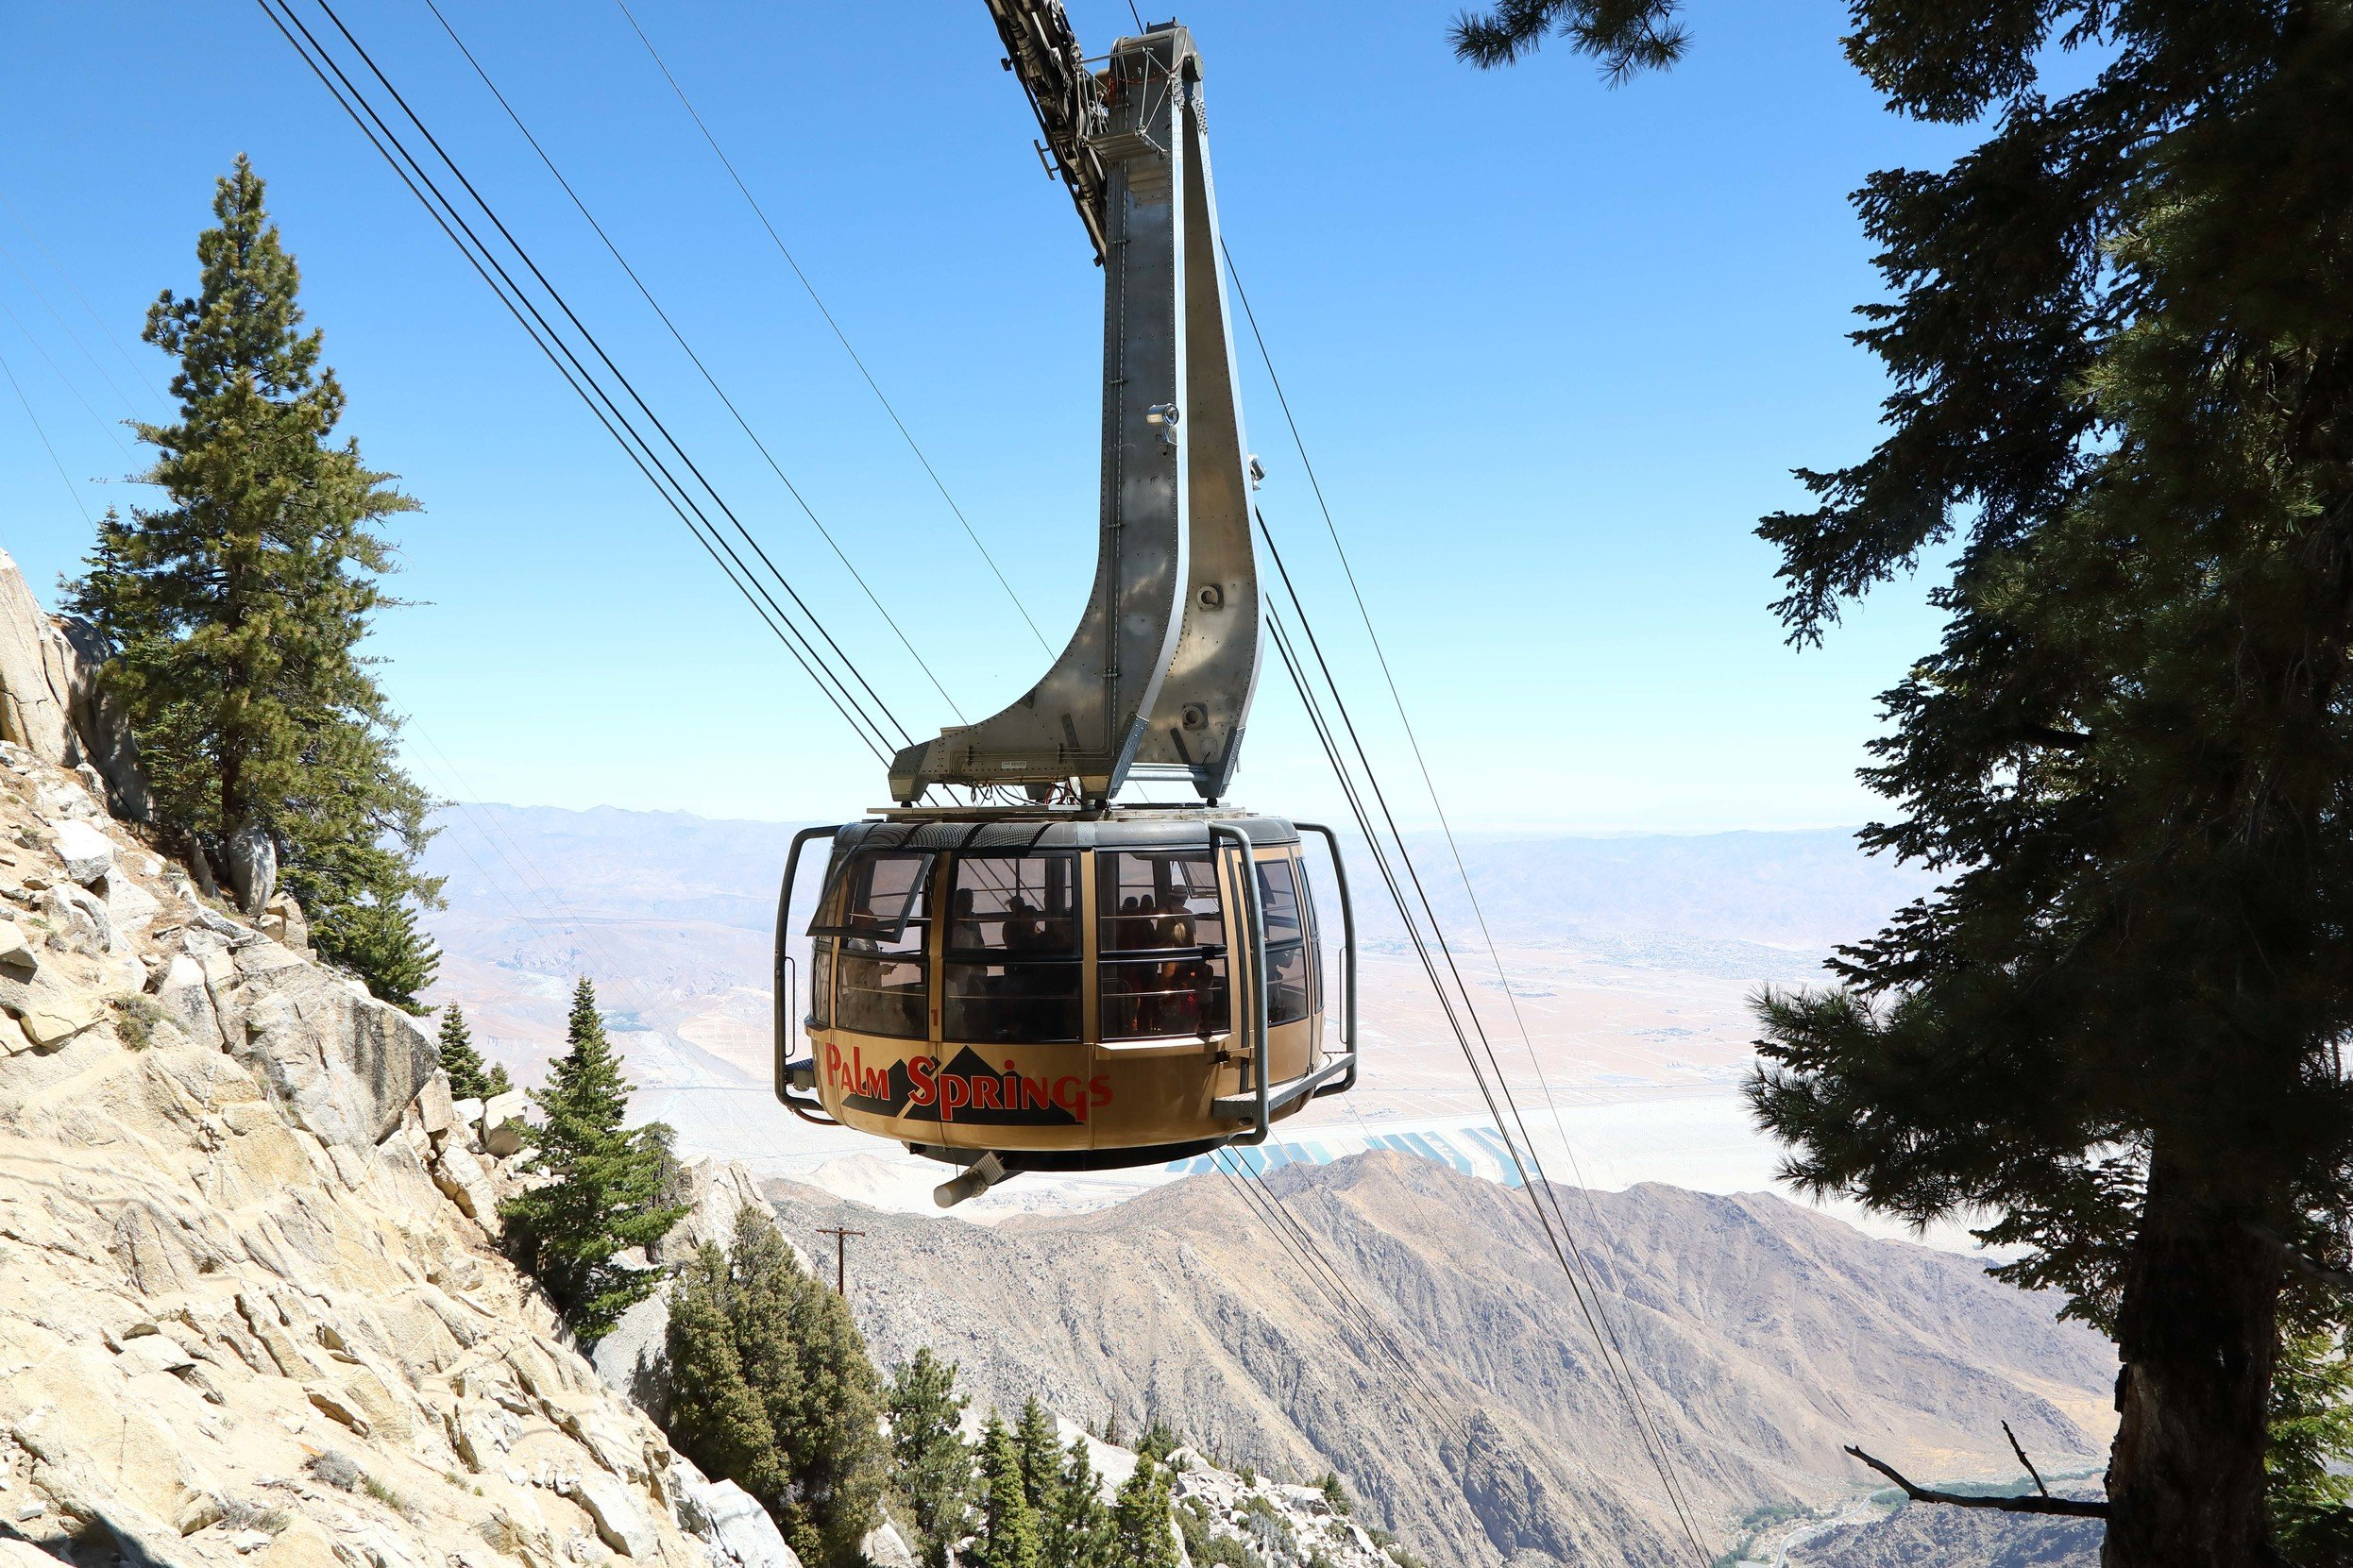 An enclosed tram moves guests downhill through the mountains.